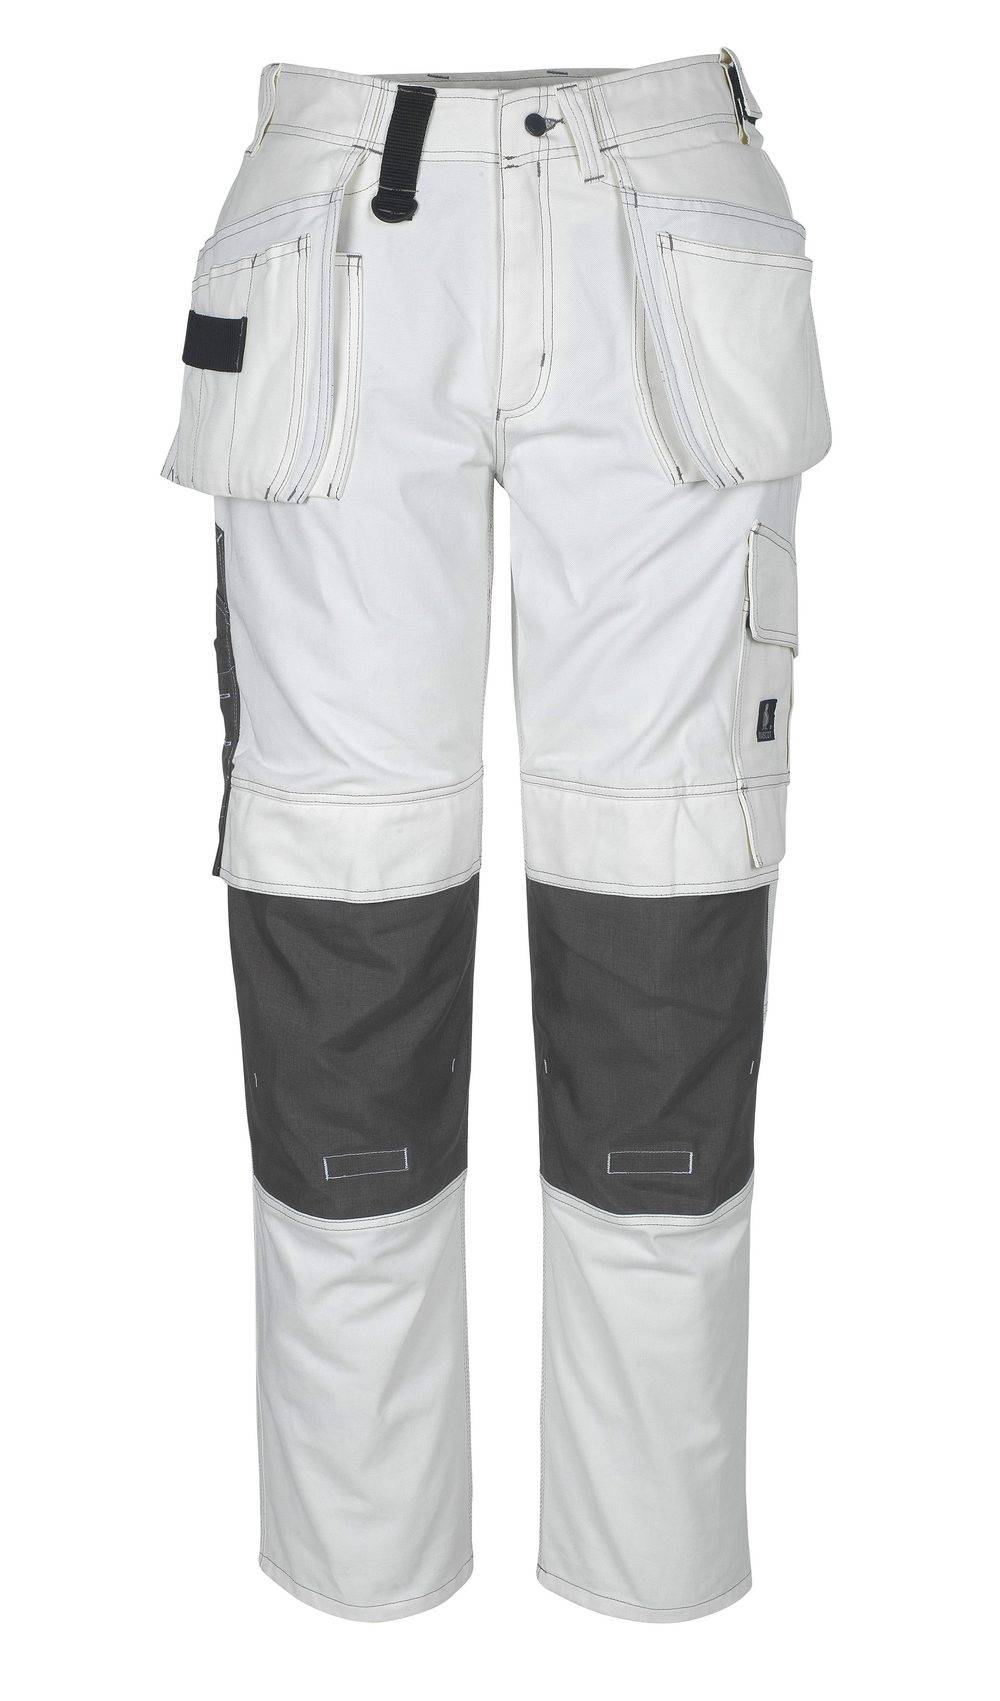 Mascot Atlanta Pants White